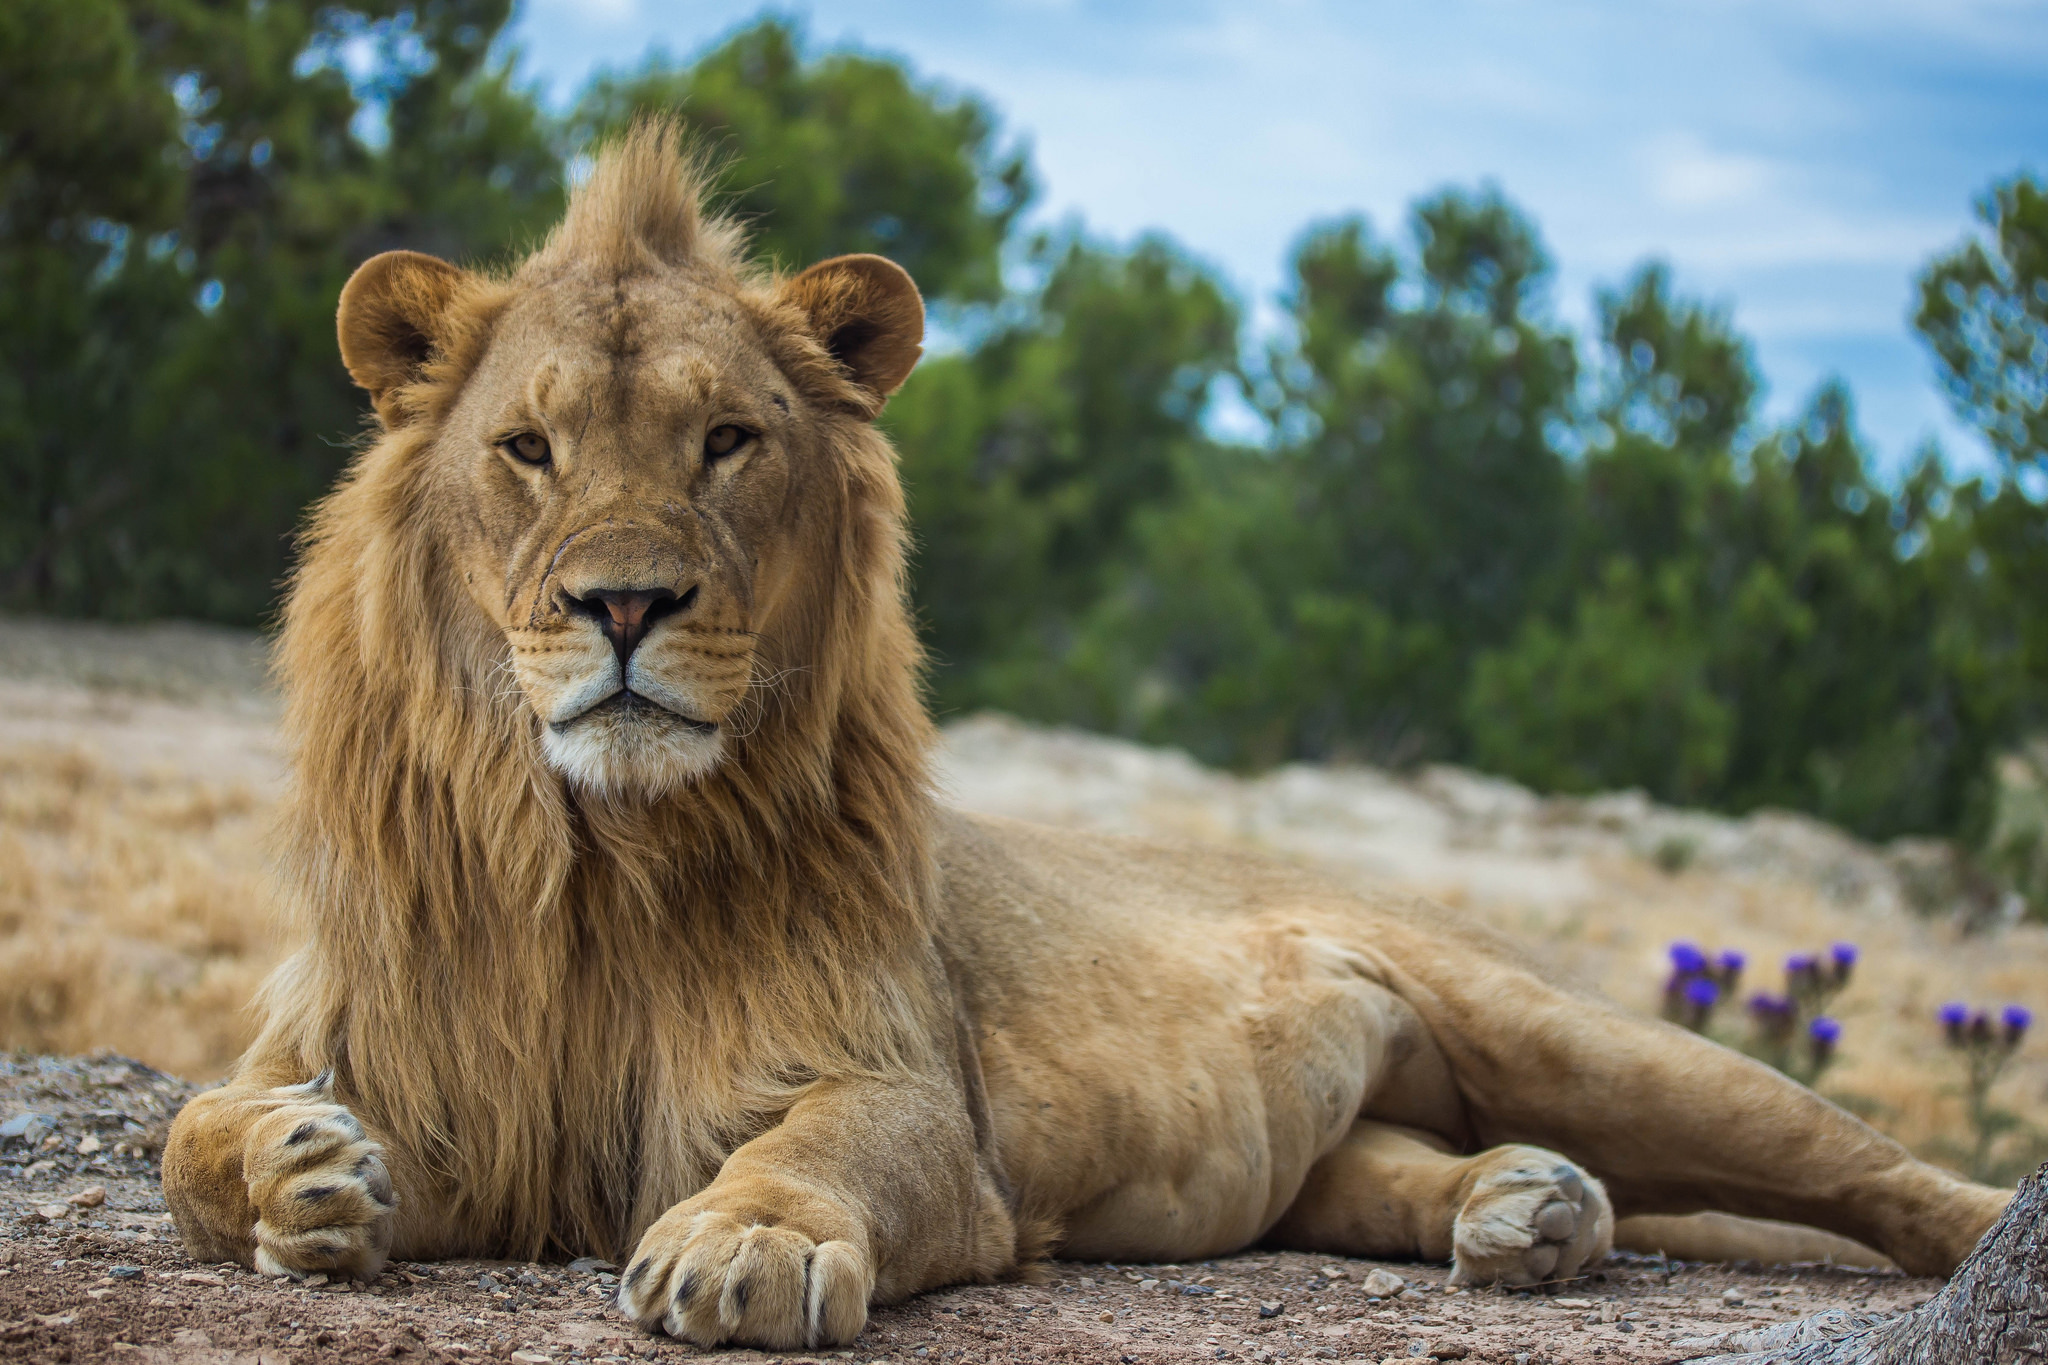 Lions - Big Cat Facts, Information & Habitat